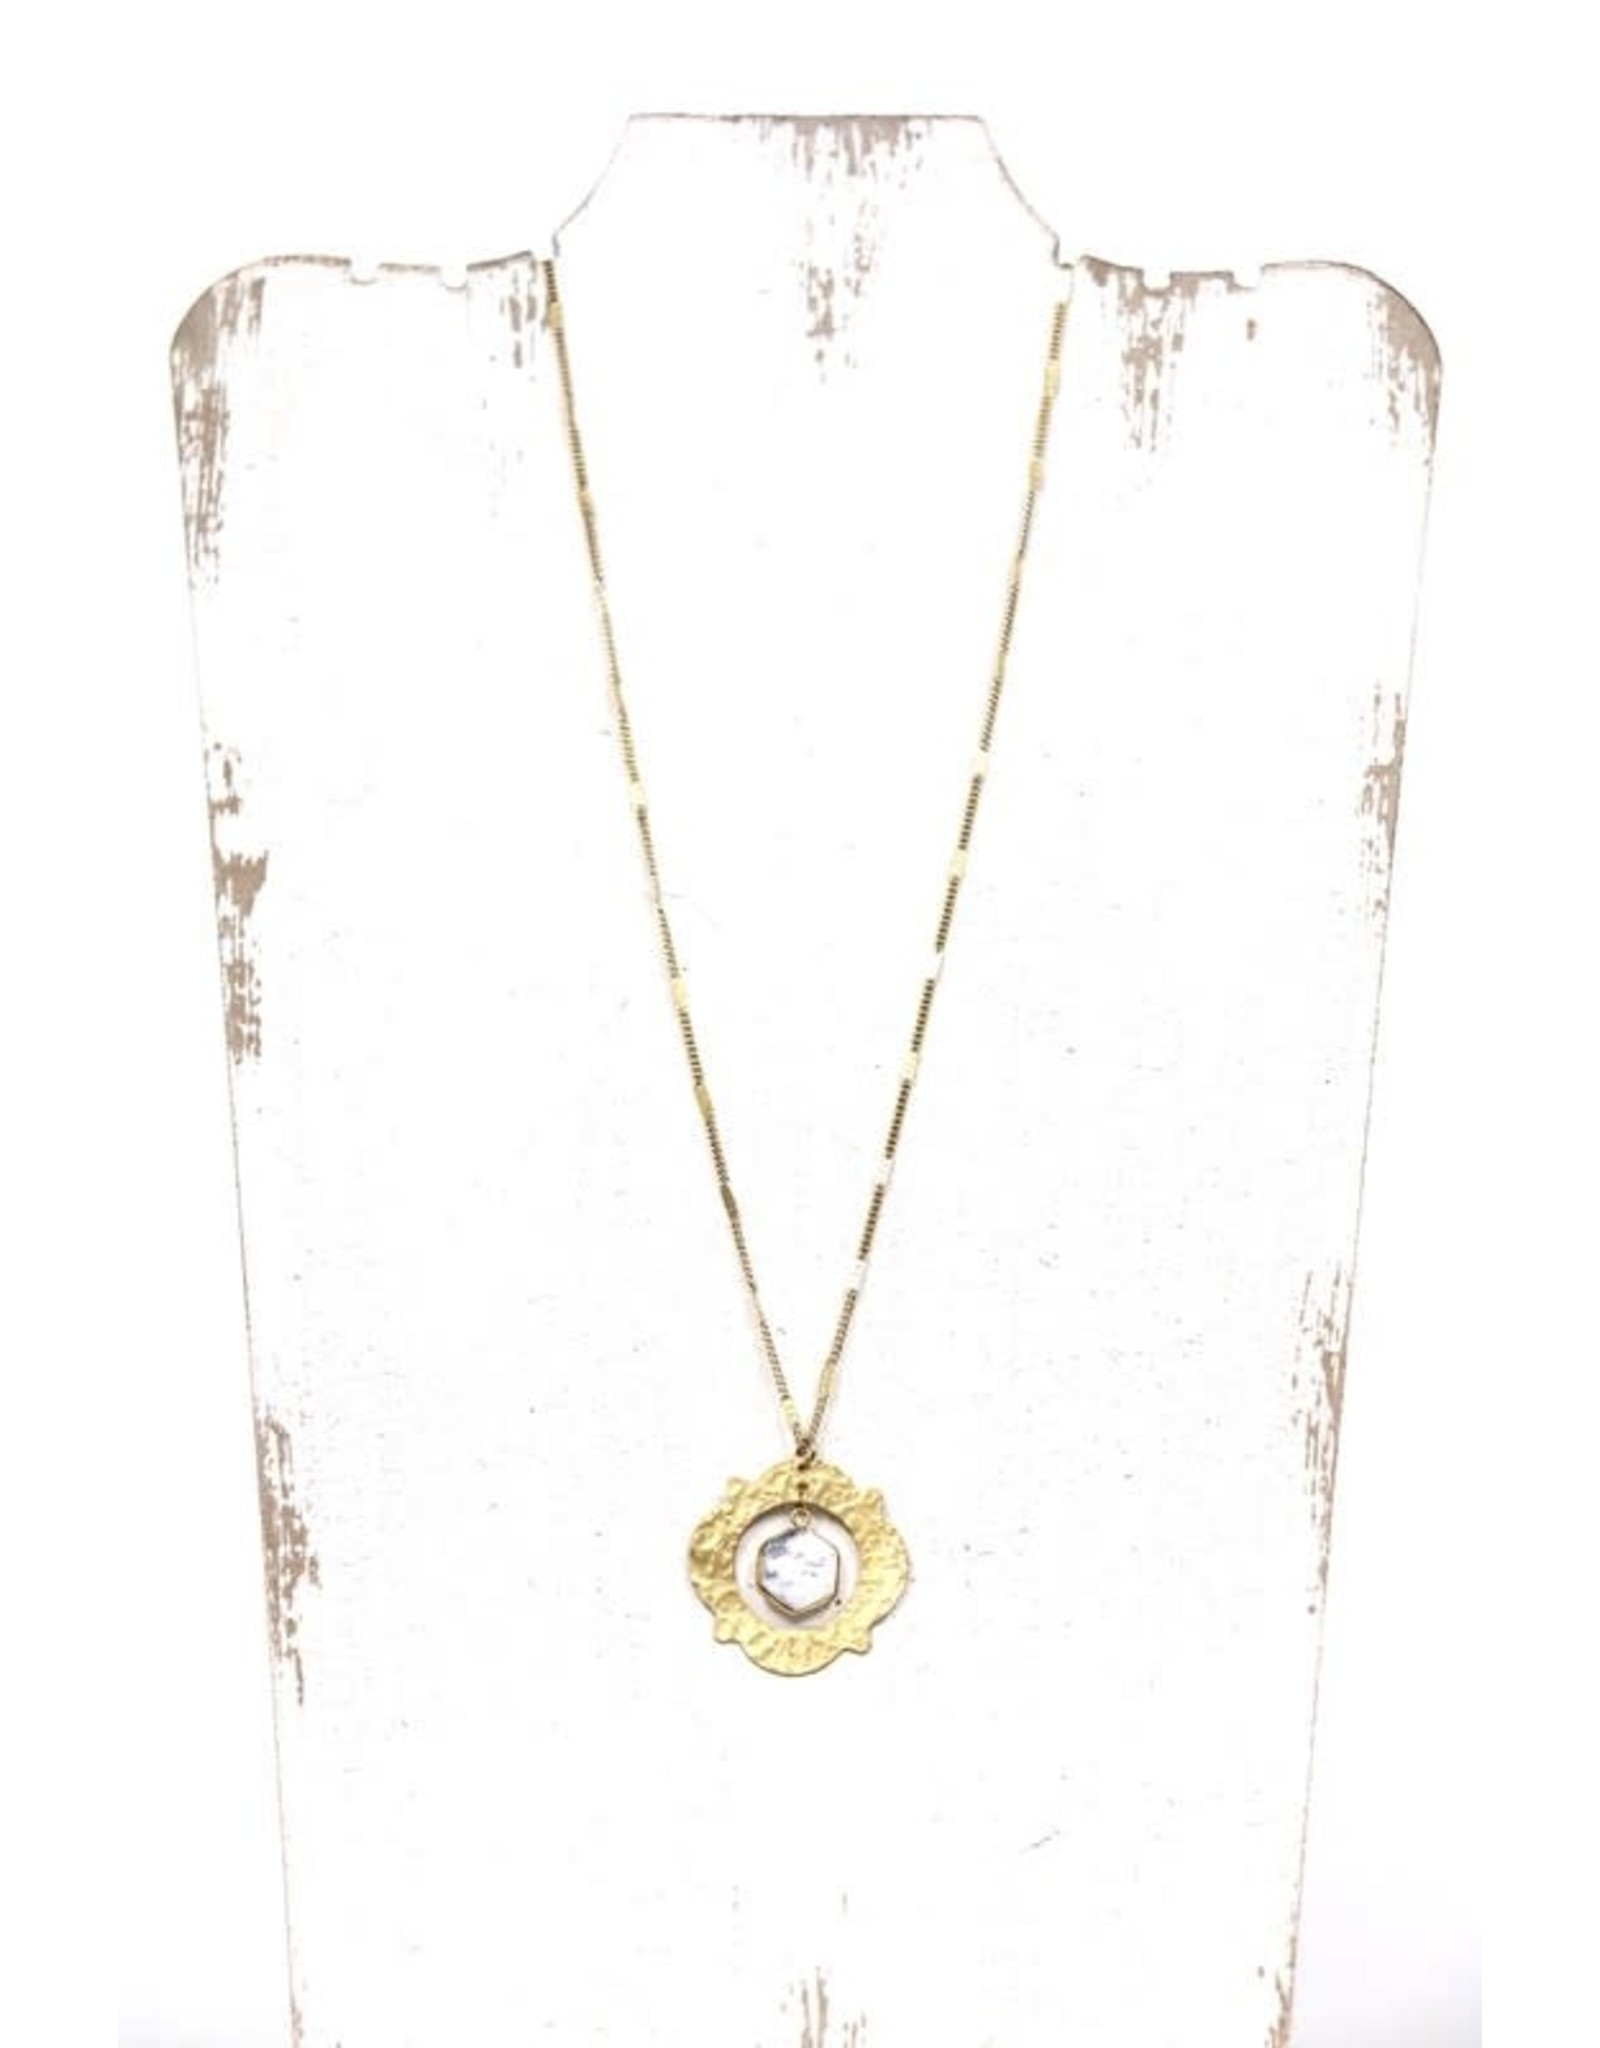 LONG GOLD PENDANT NECKLACE W/ HEXAGON GEMSTONE N-111